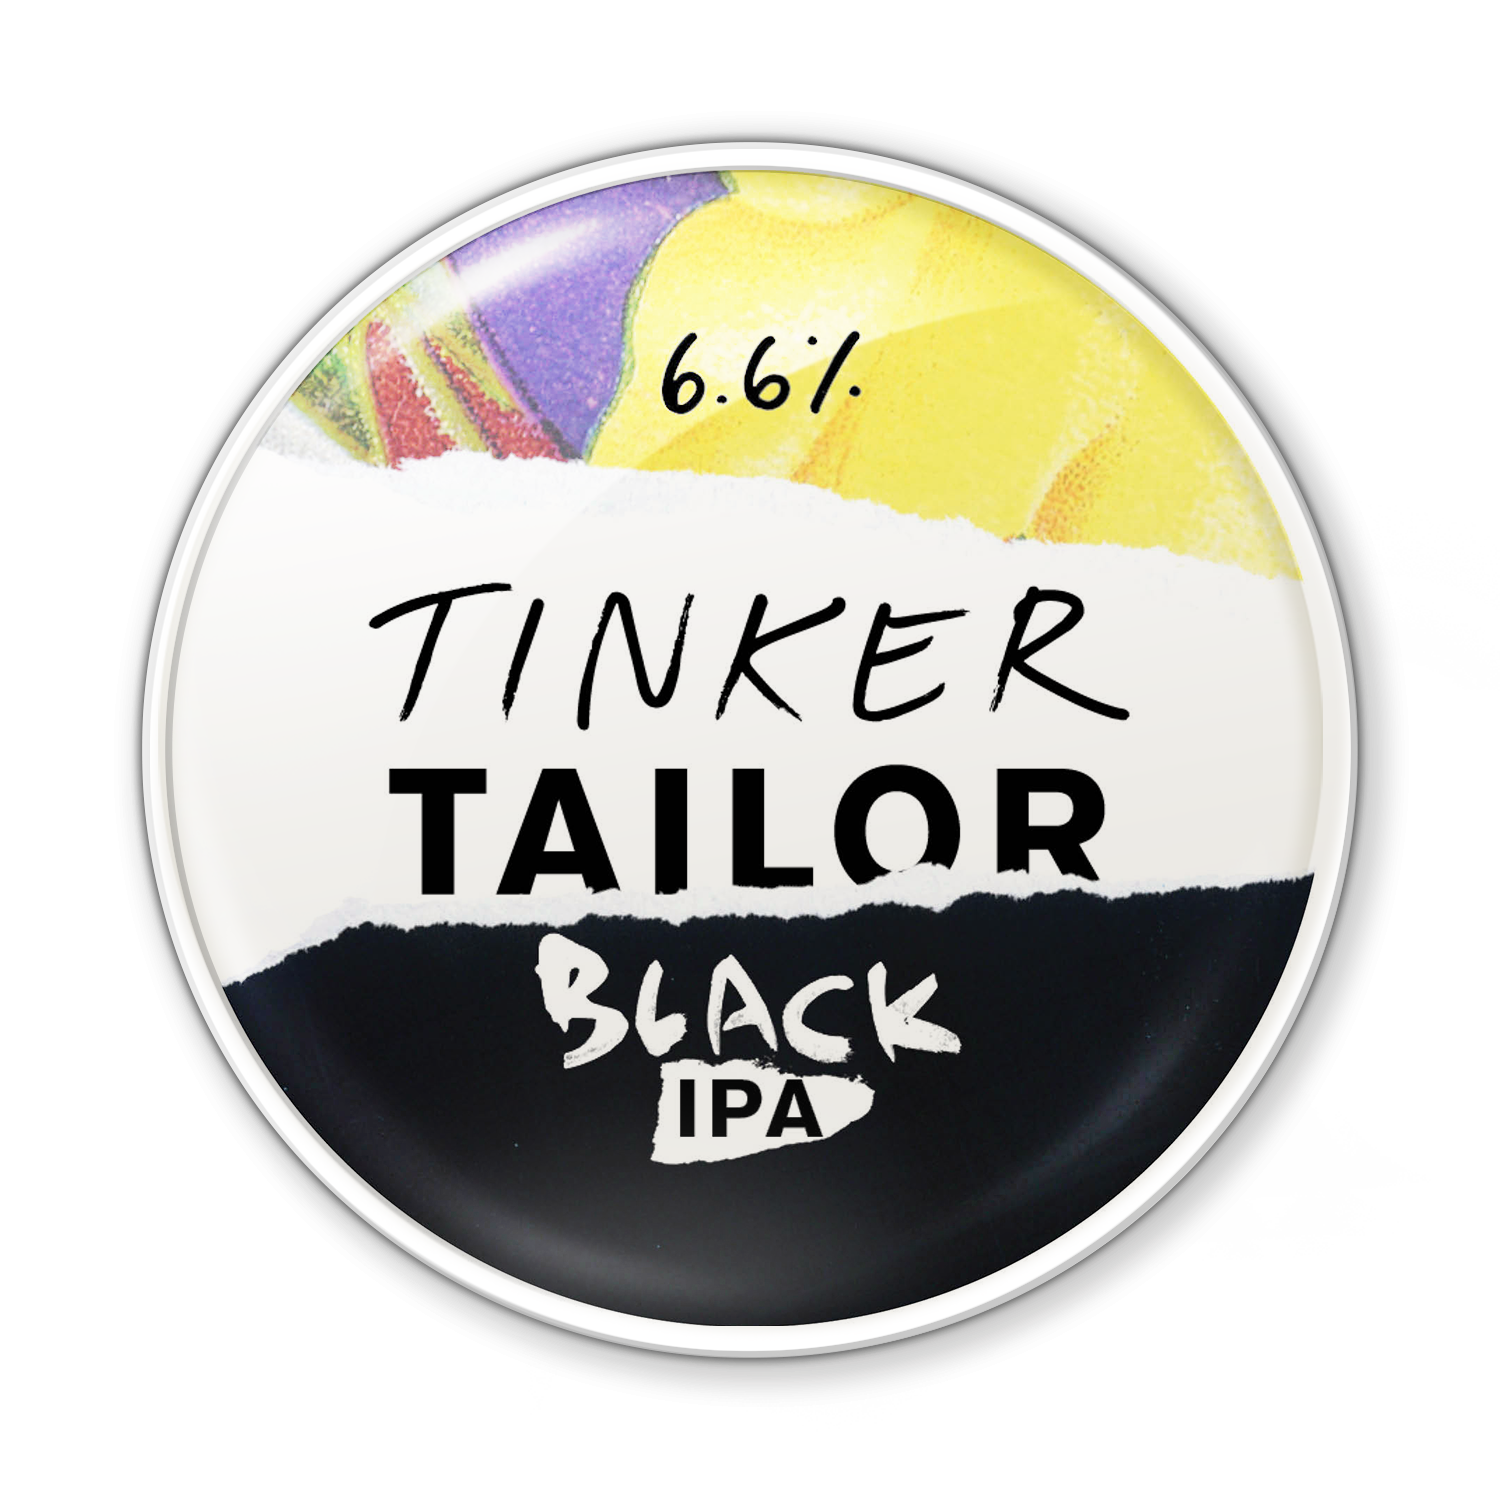 Black IPA - Tinker's gone over to the dark side! Our IPA has been blended with black malts to create a memorable mash-up of espresso and evergreen. A surprisingly sensuous sipPairs well with sharp cheeses such as a smoked gouda.6.6%